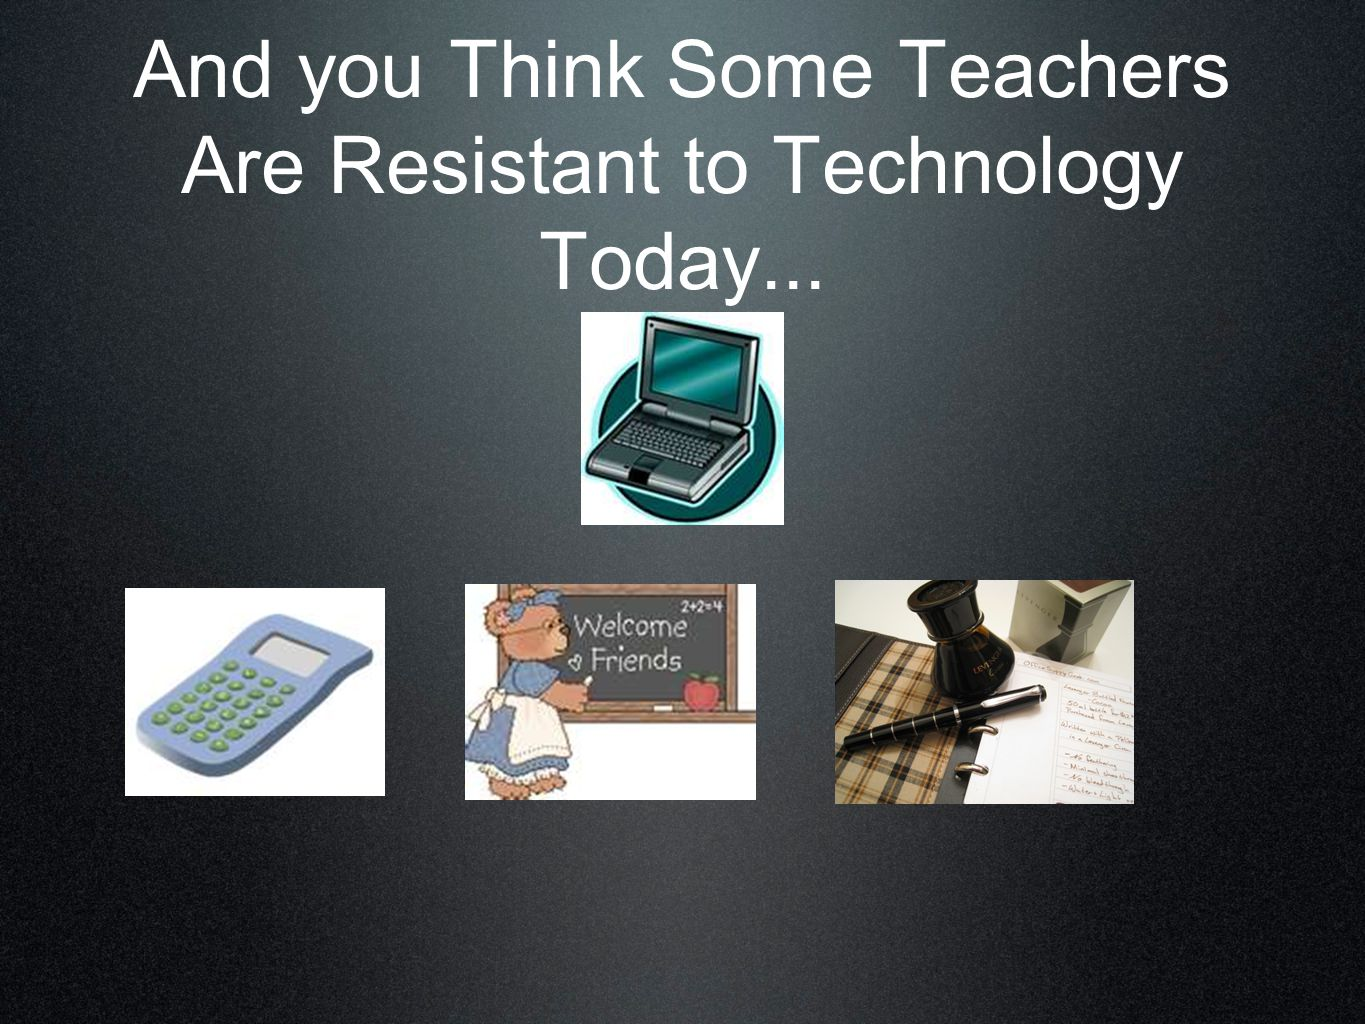 And you Think Some Teachers Are Resistant to Technology Today...